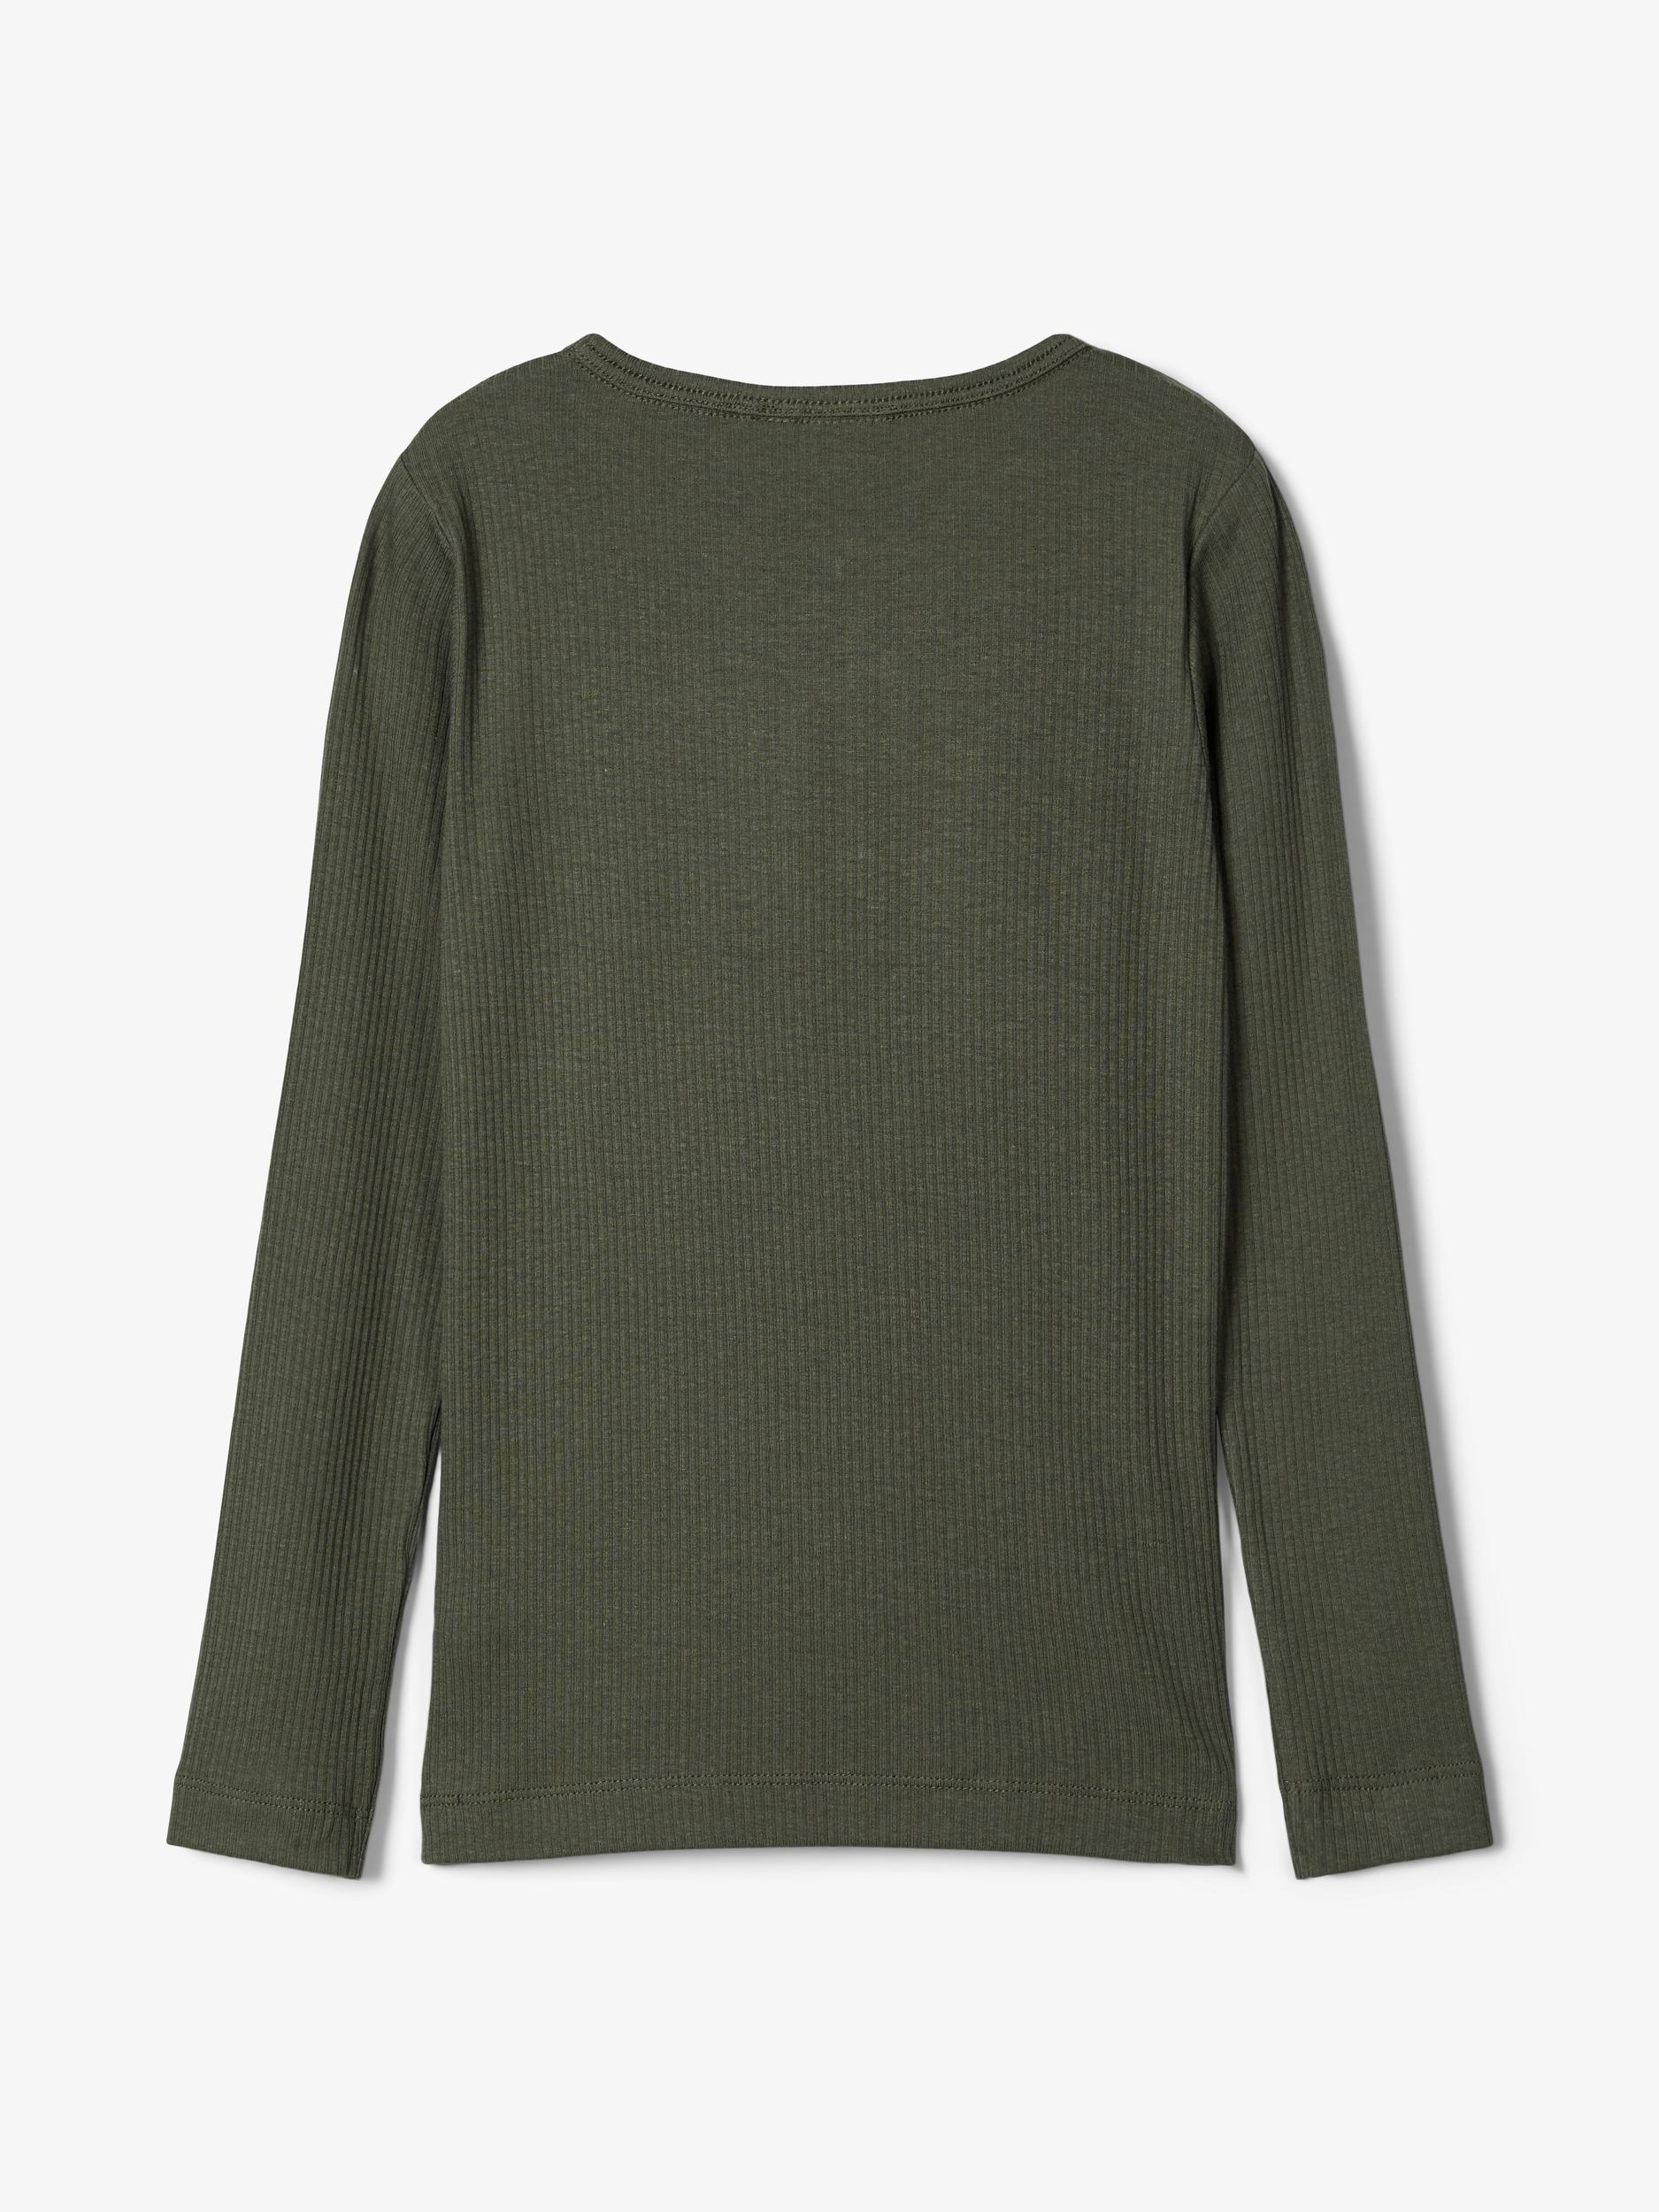 Name It Kabille LS t-shirt, thyme, 122-128